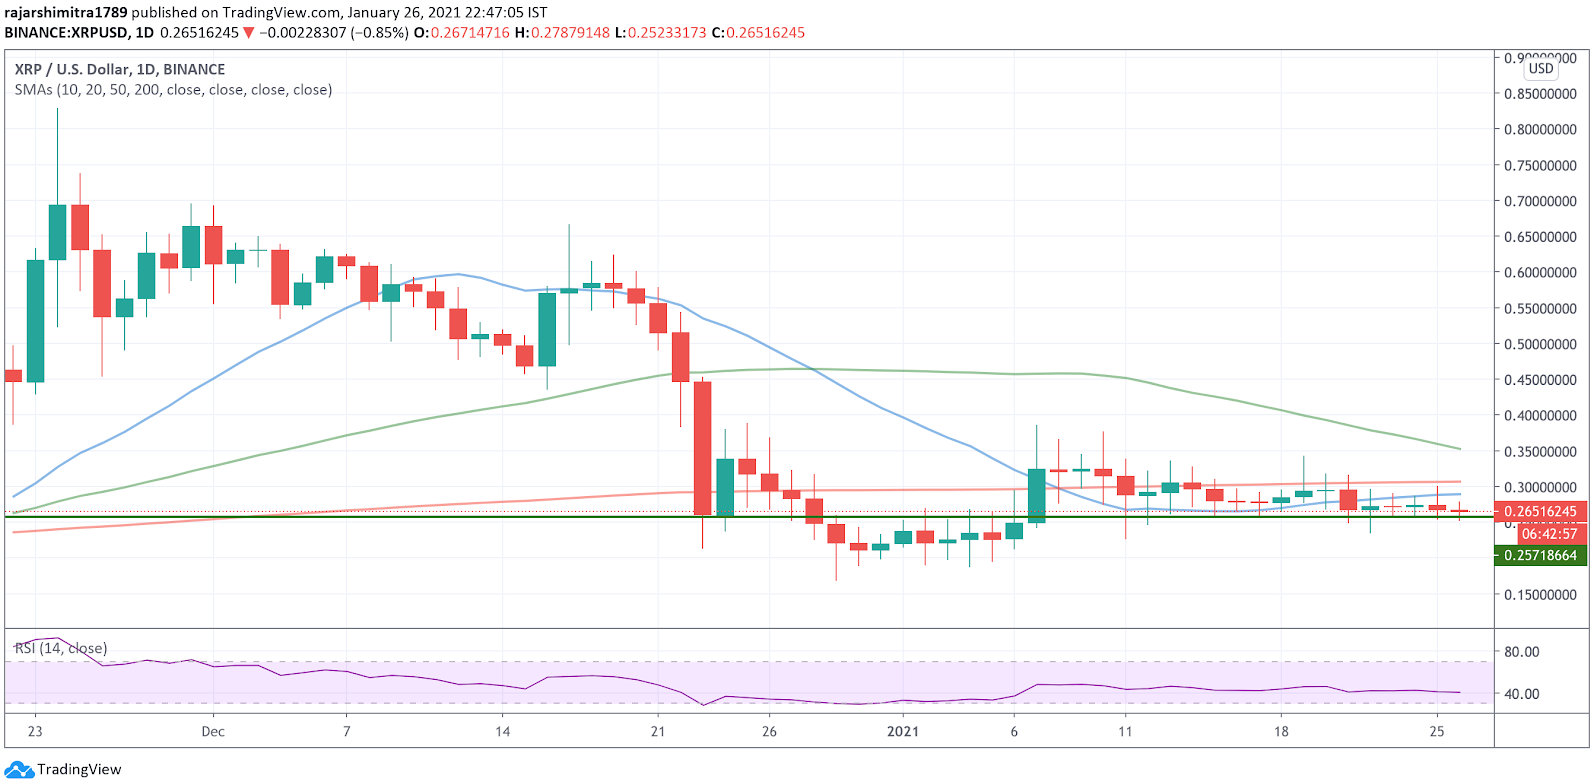 xrp/usd daily chart 012721